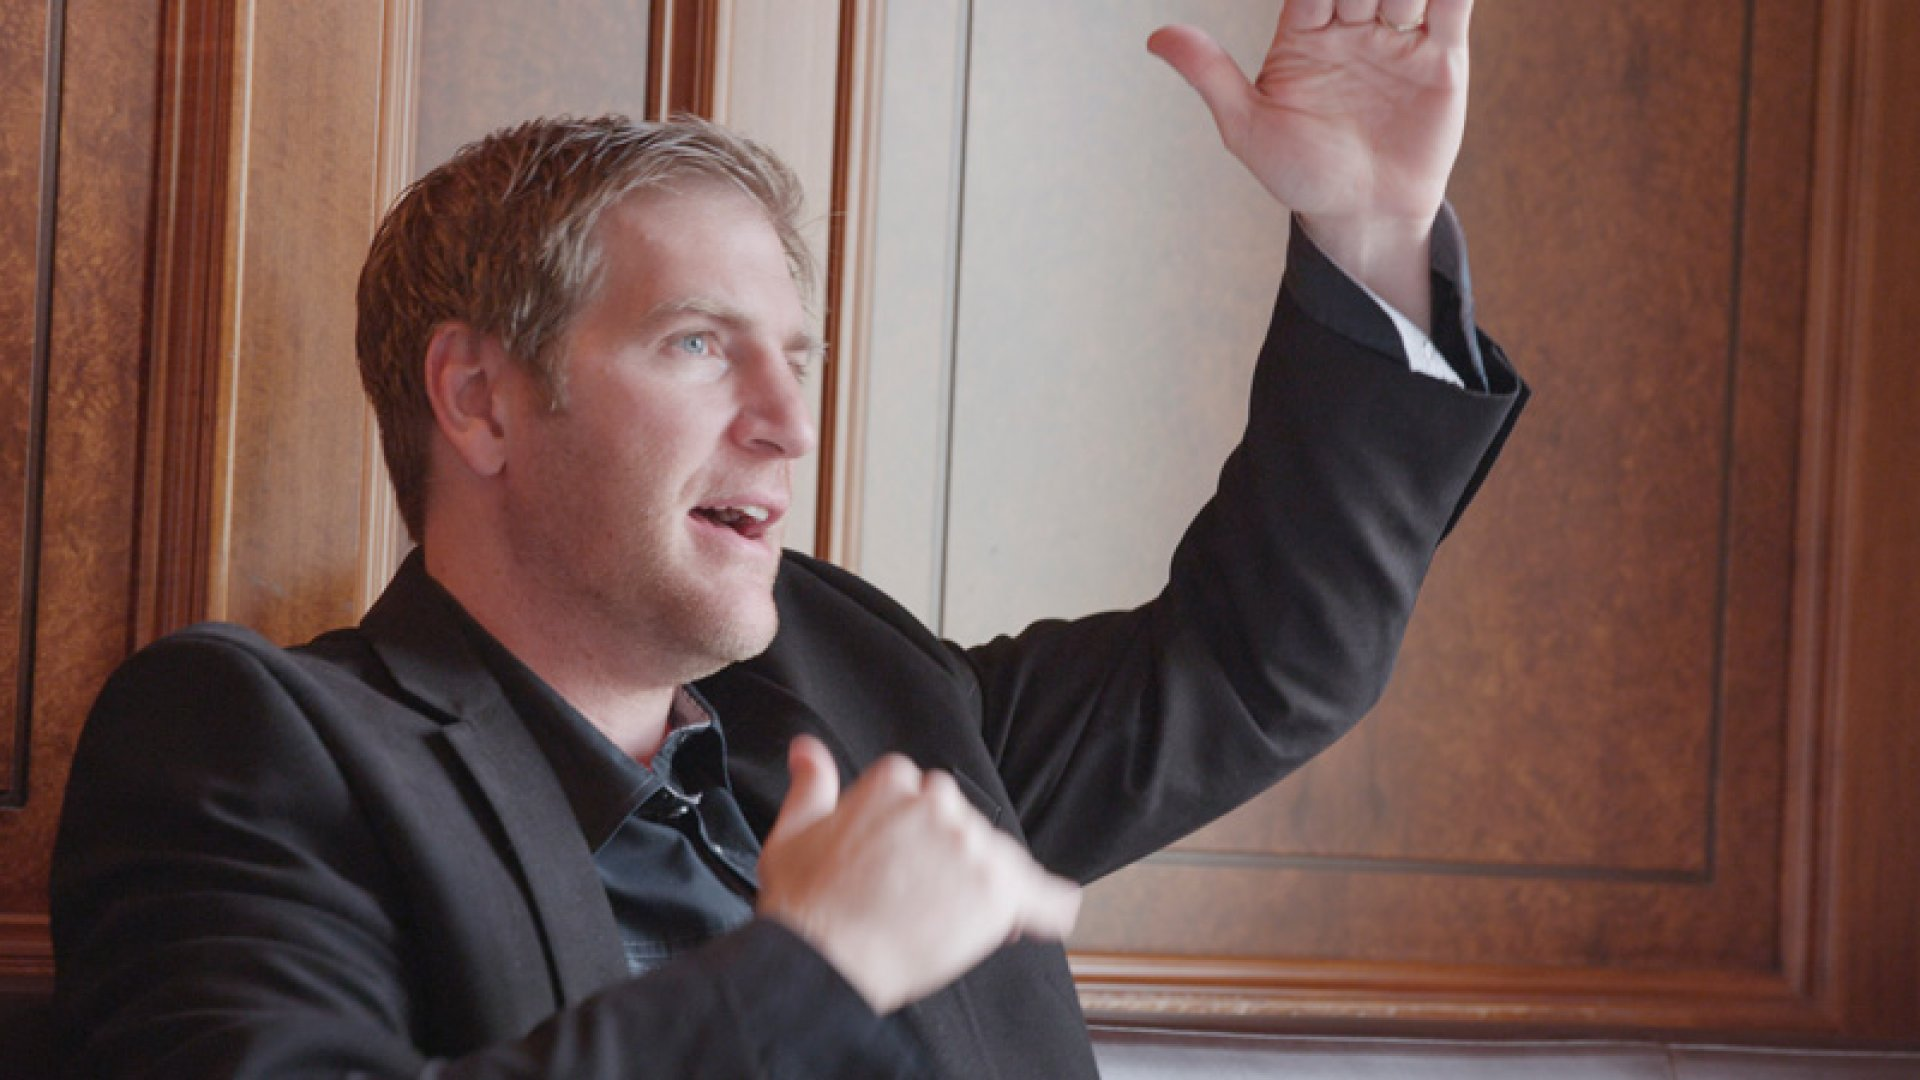 Dave Elkington, founder and CEO of InsideSales.com